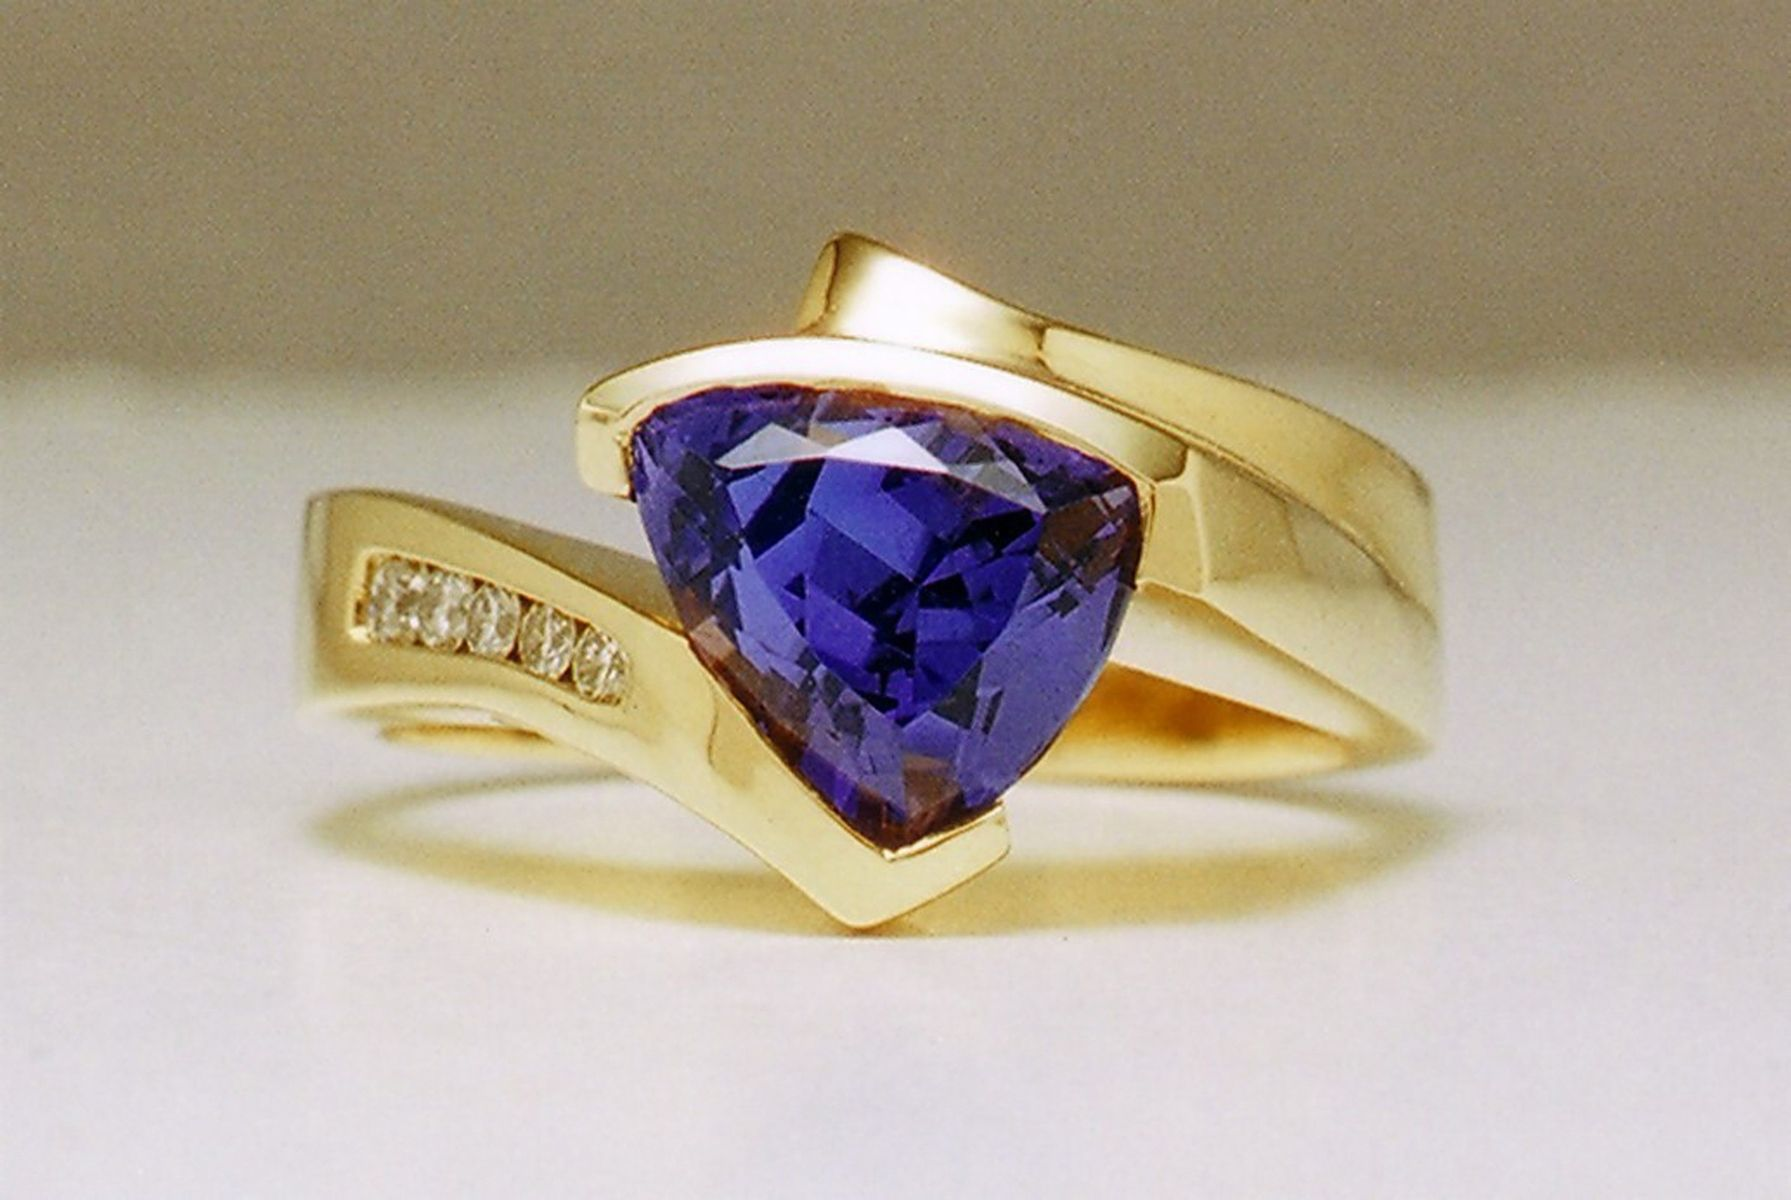 crop the gold fashionable set bands false subsampling scale pav dark engagement upscale rings in bold with feil white tanzenite blue a tanzanite gemstone and fei bridal liu ring diamonds article